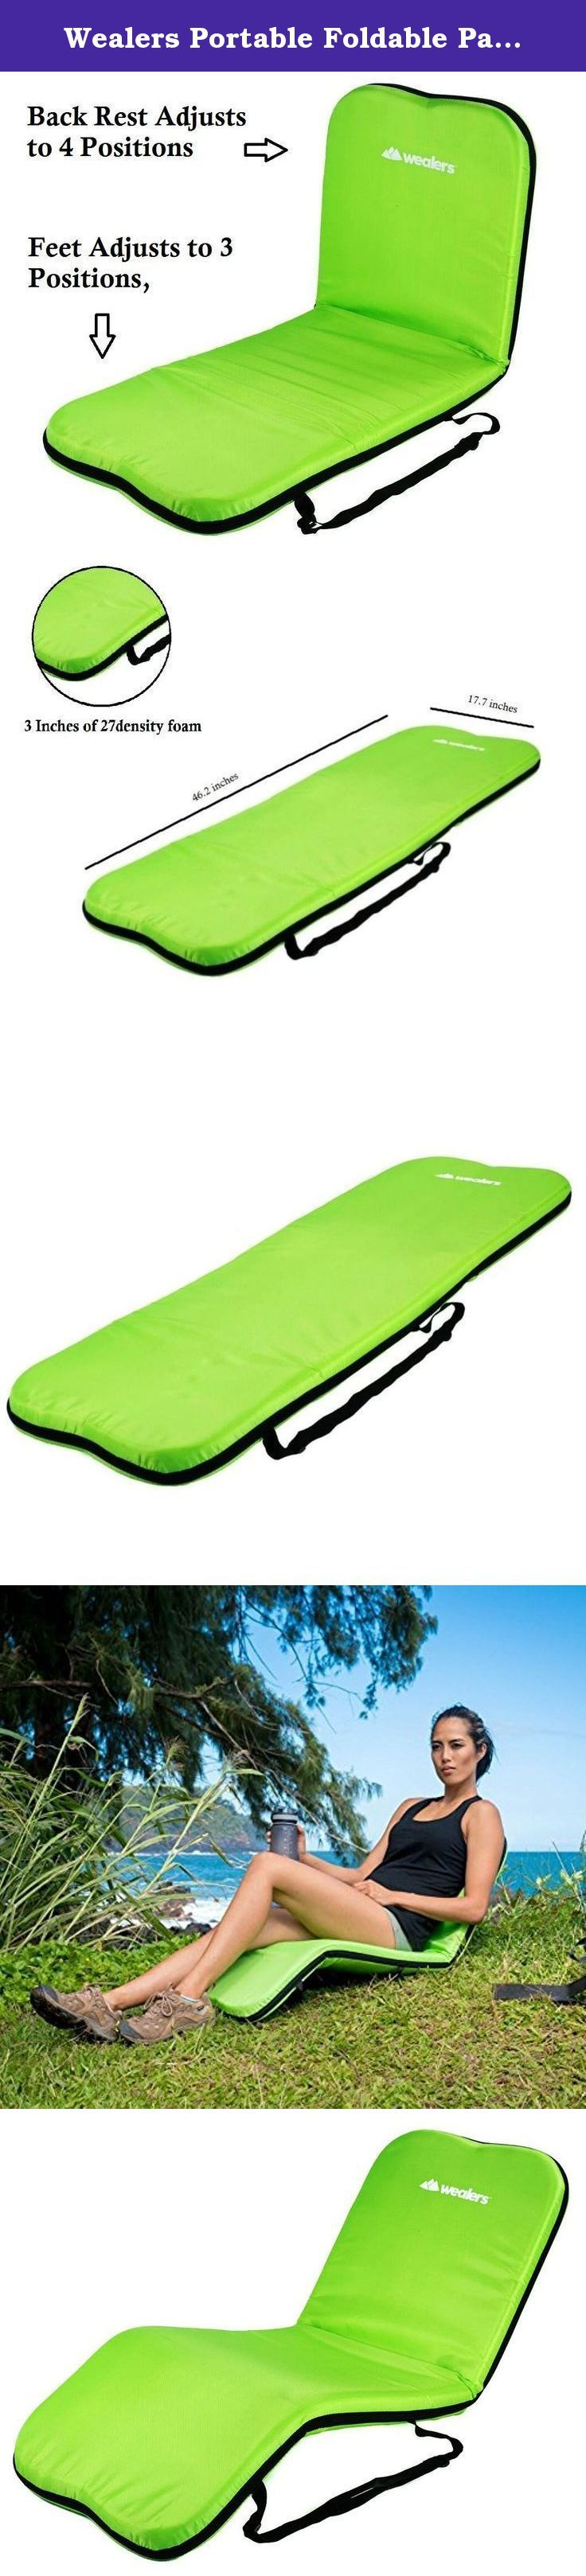 Wealers Portable Foldable Padded Recliner Seat Mat, for Camping or a Beach Mat, with Adjustable Reclining Positions for Feet and Back, 100% Water Proof, (Green). Number 1 best beach chair mat, can be used as a chair and as a mat, Cushioned seat 27 density foam, Adjustable Reclining Positions for Feet and Back, back rest adjusts to 4 positions, feet adjusts to 3 different Positions, Material:steel tube(19*1.0MM),27density foam Cover Material:420 polyester, 100% water proof, Lightweight and...